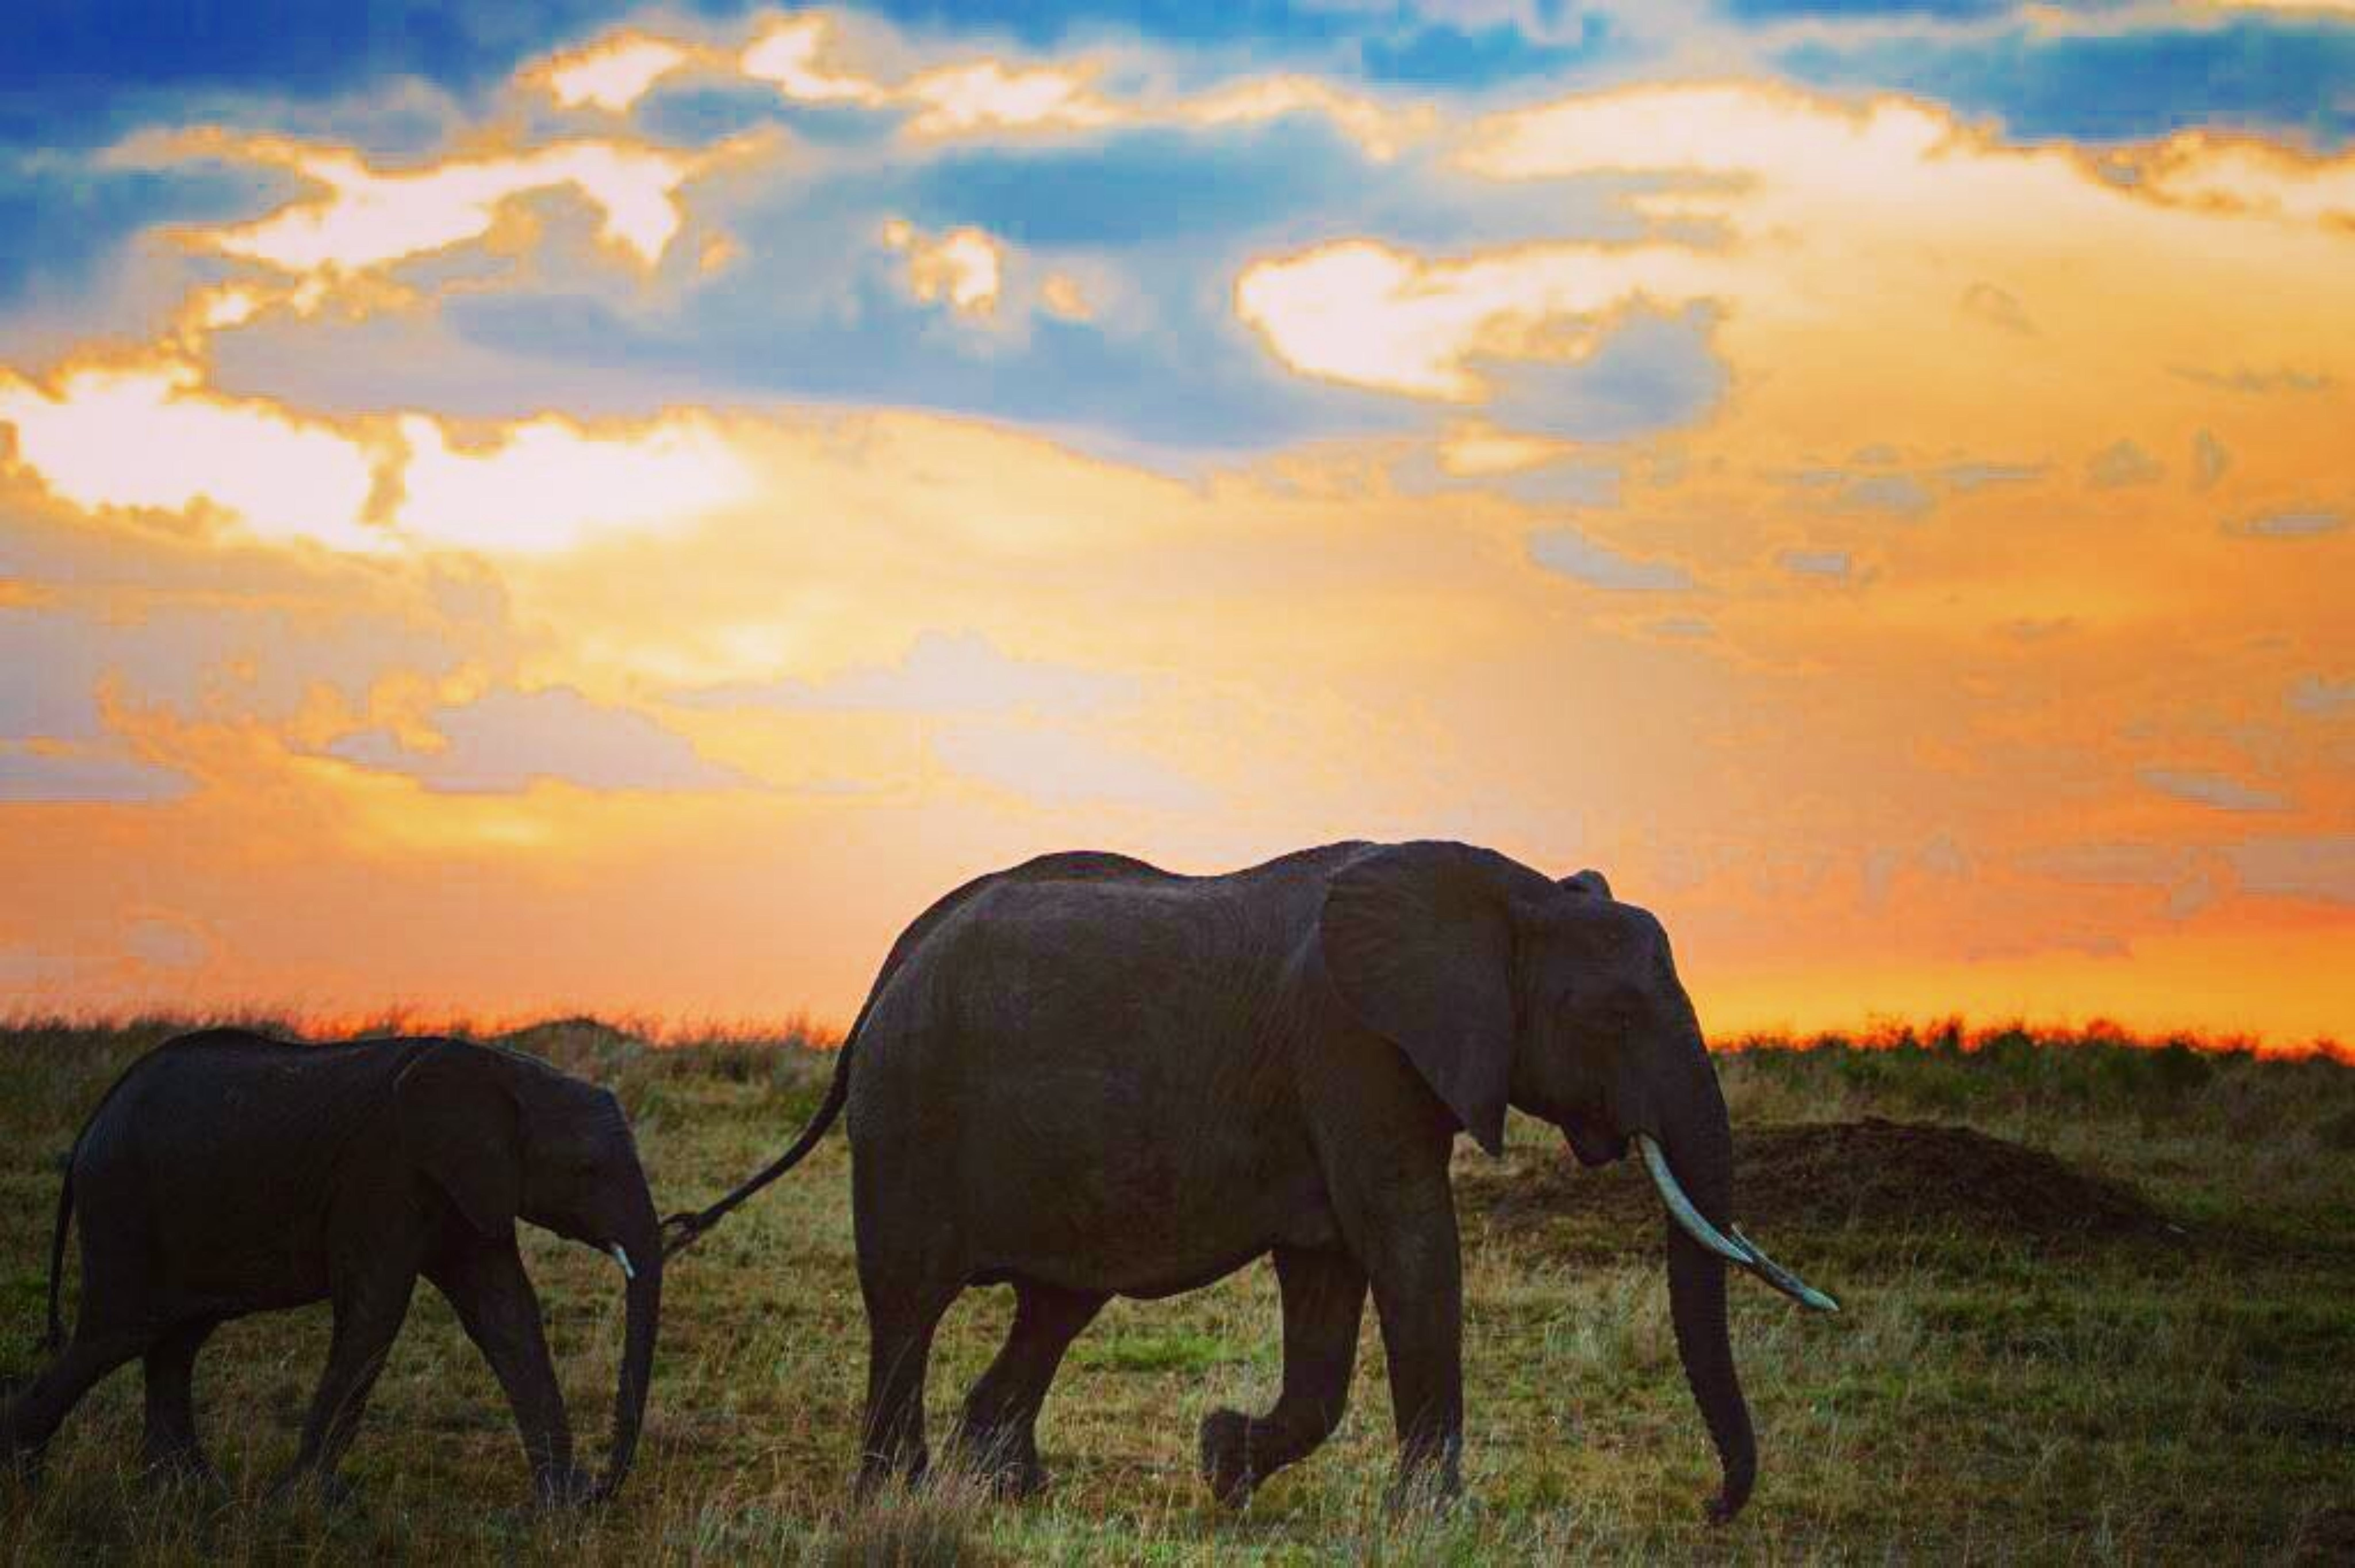 Adult and Young Elephants Walking Along Grass Field